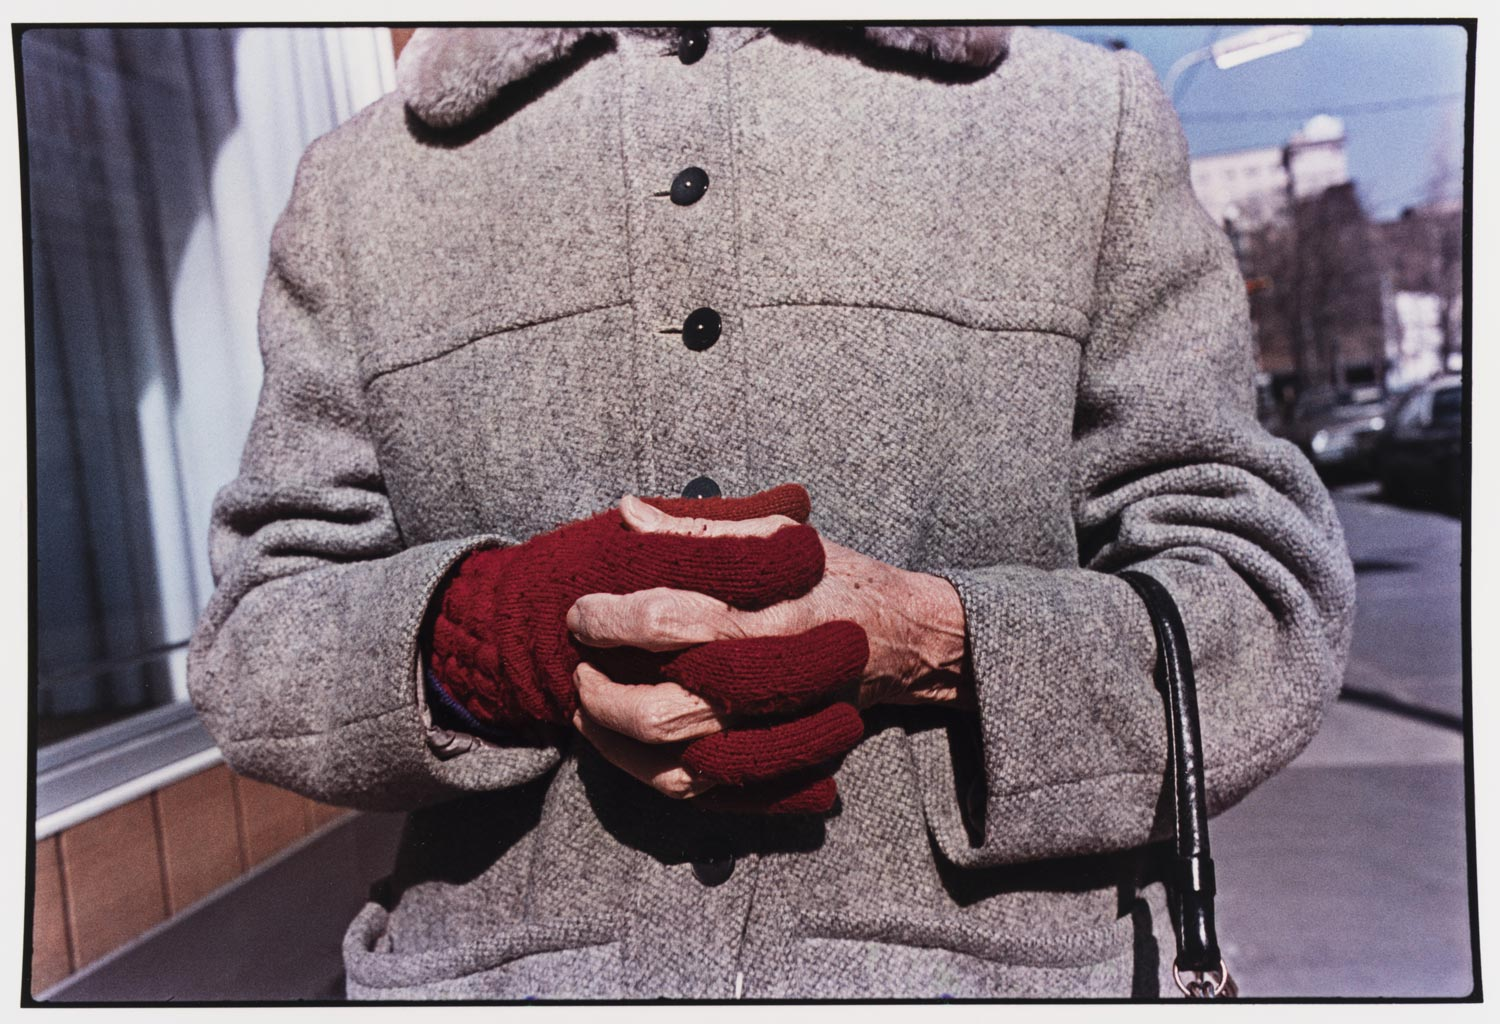 photograph of the torso of a person sstood on the street wearing a thick coat, they have one bare hand and are wearing a red glove on the other